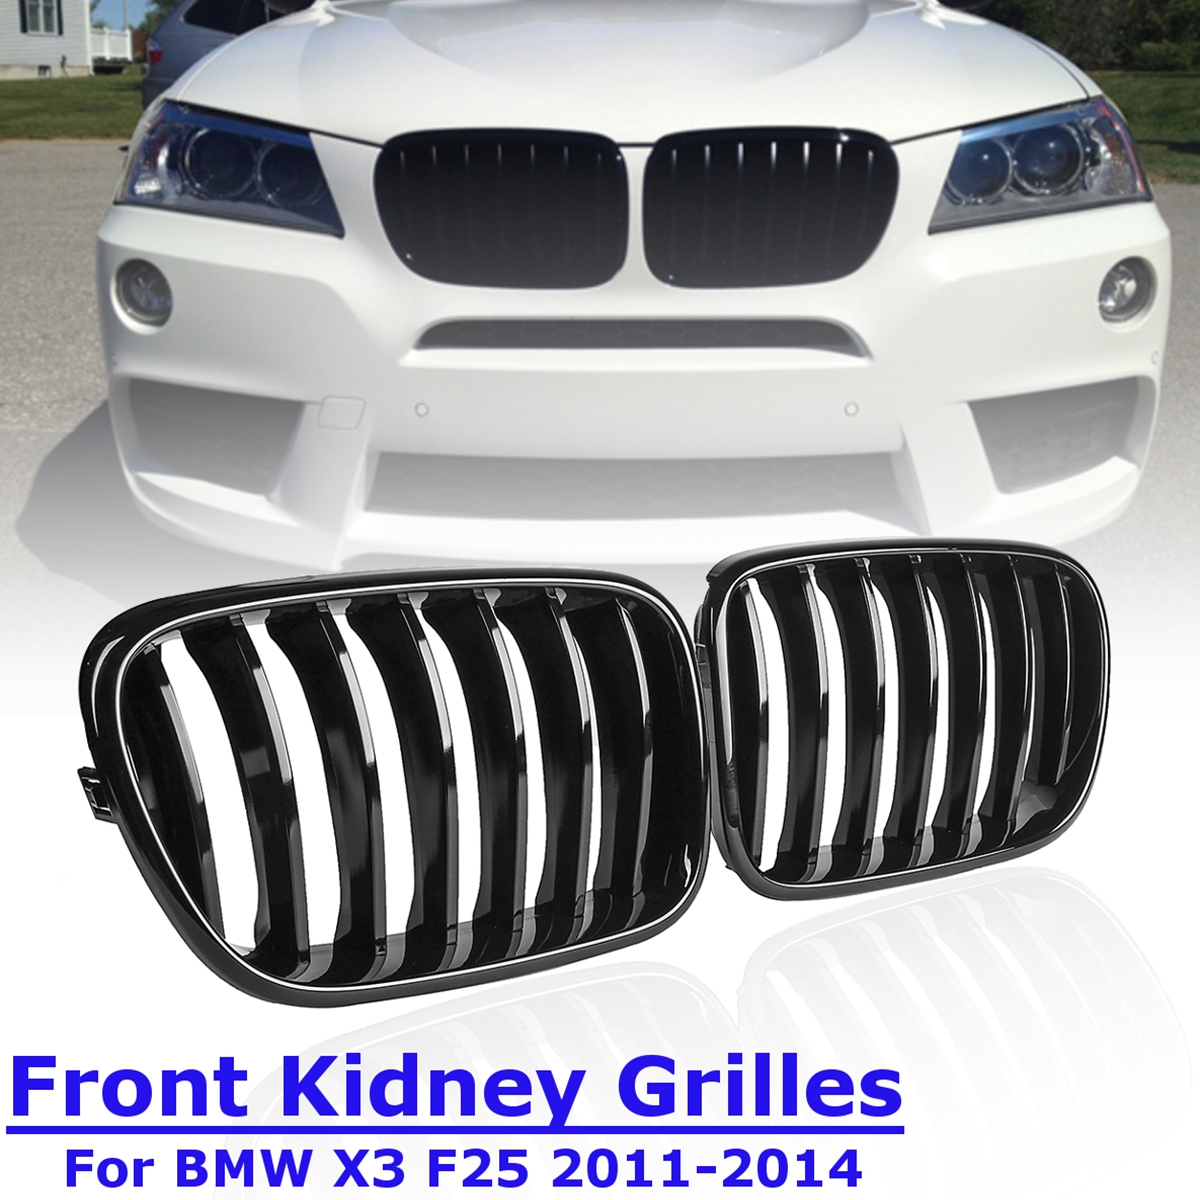 1Pair for BMW X3 F25 2011 2012 2013 2014 Front Kidney Grill Grille Matt Gloss Black M Color Replacement Racing Grills high power dimmable 189mm led r7s light 50w cob r7s led lamp with cooling fan replace 500w halogen lamp